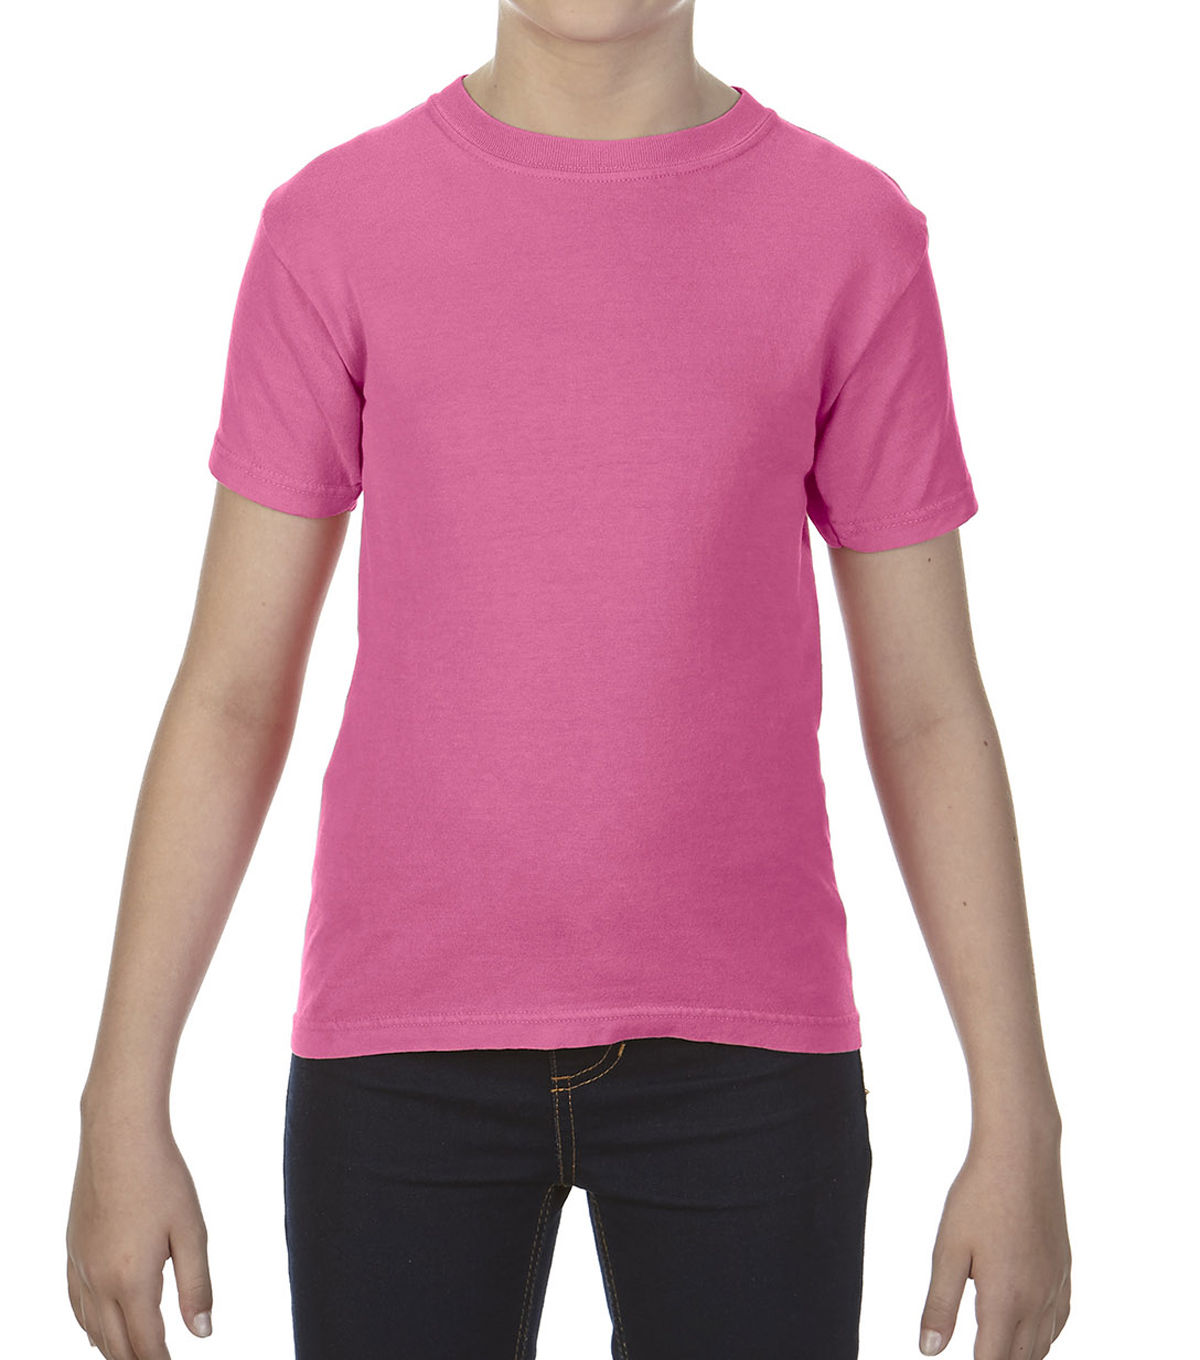 Comfort Colors 9018 Small Youth T Shirt Comfort Colors Shirts